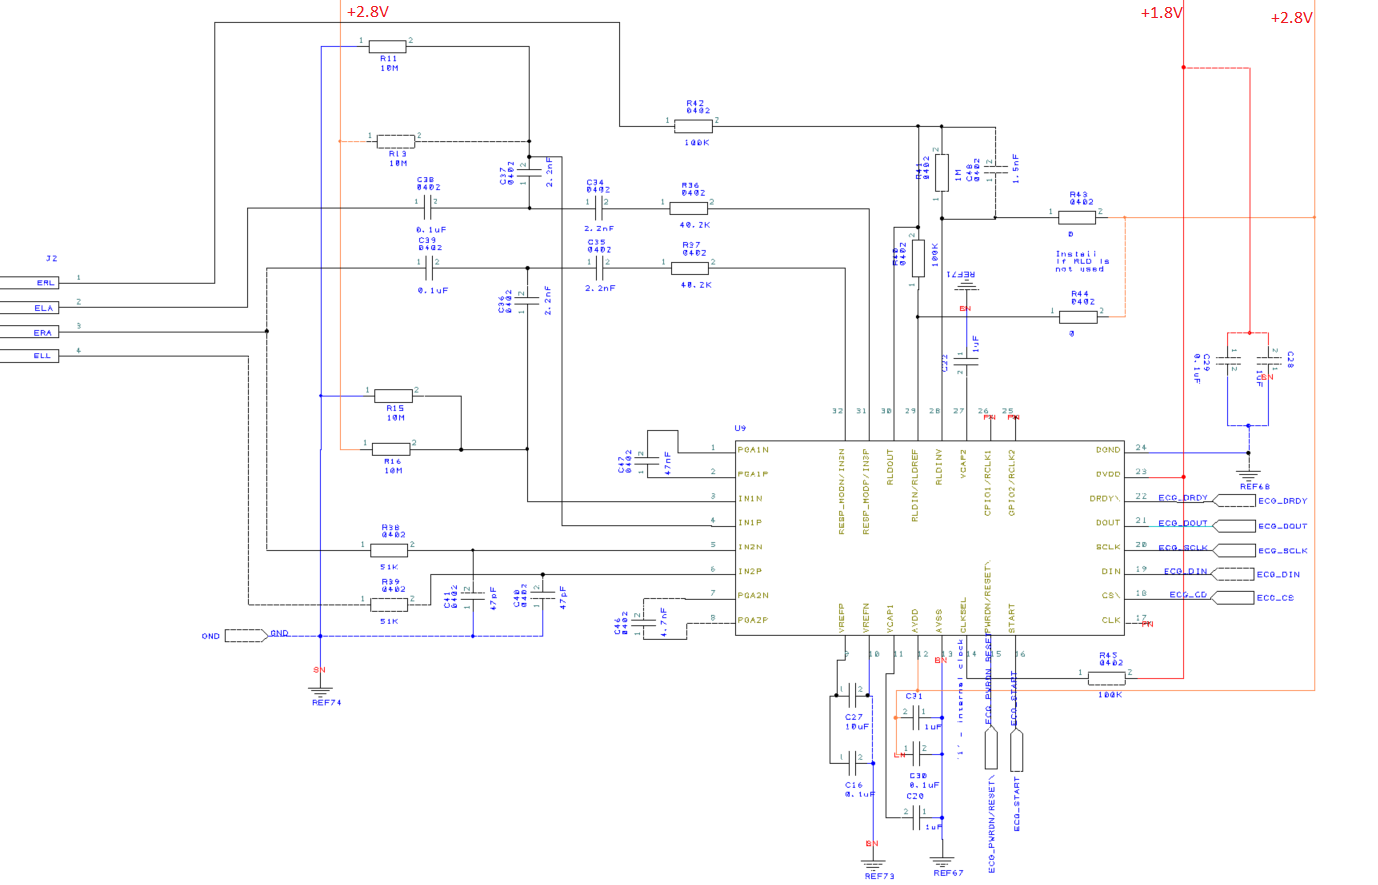 ADS1292R Interfacing problem with STM32: Noisy Channel 2